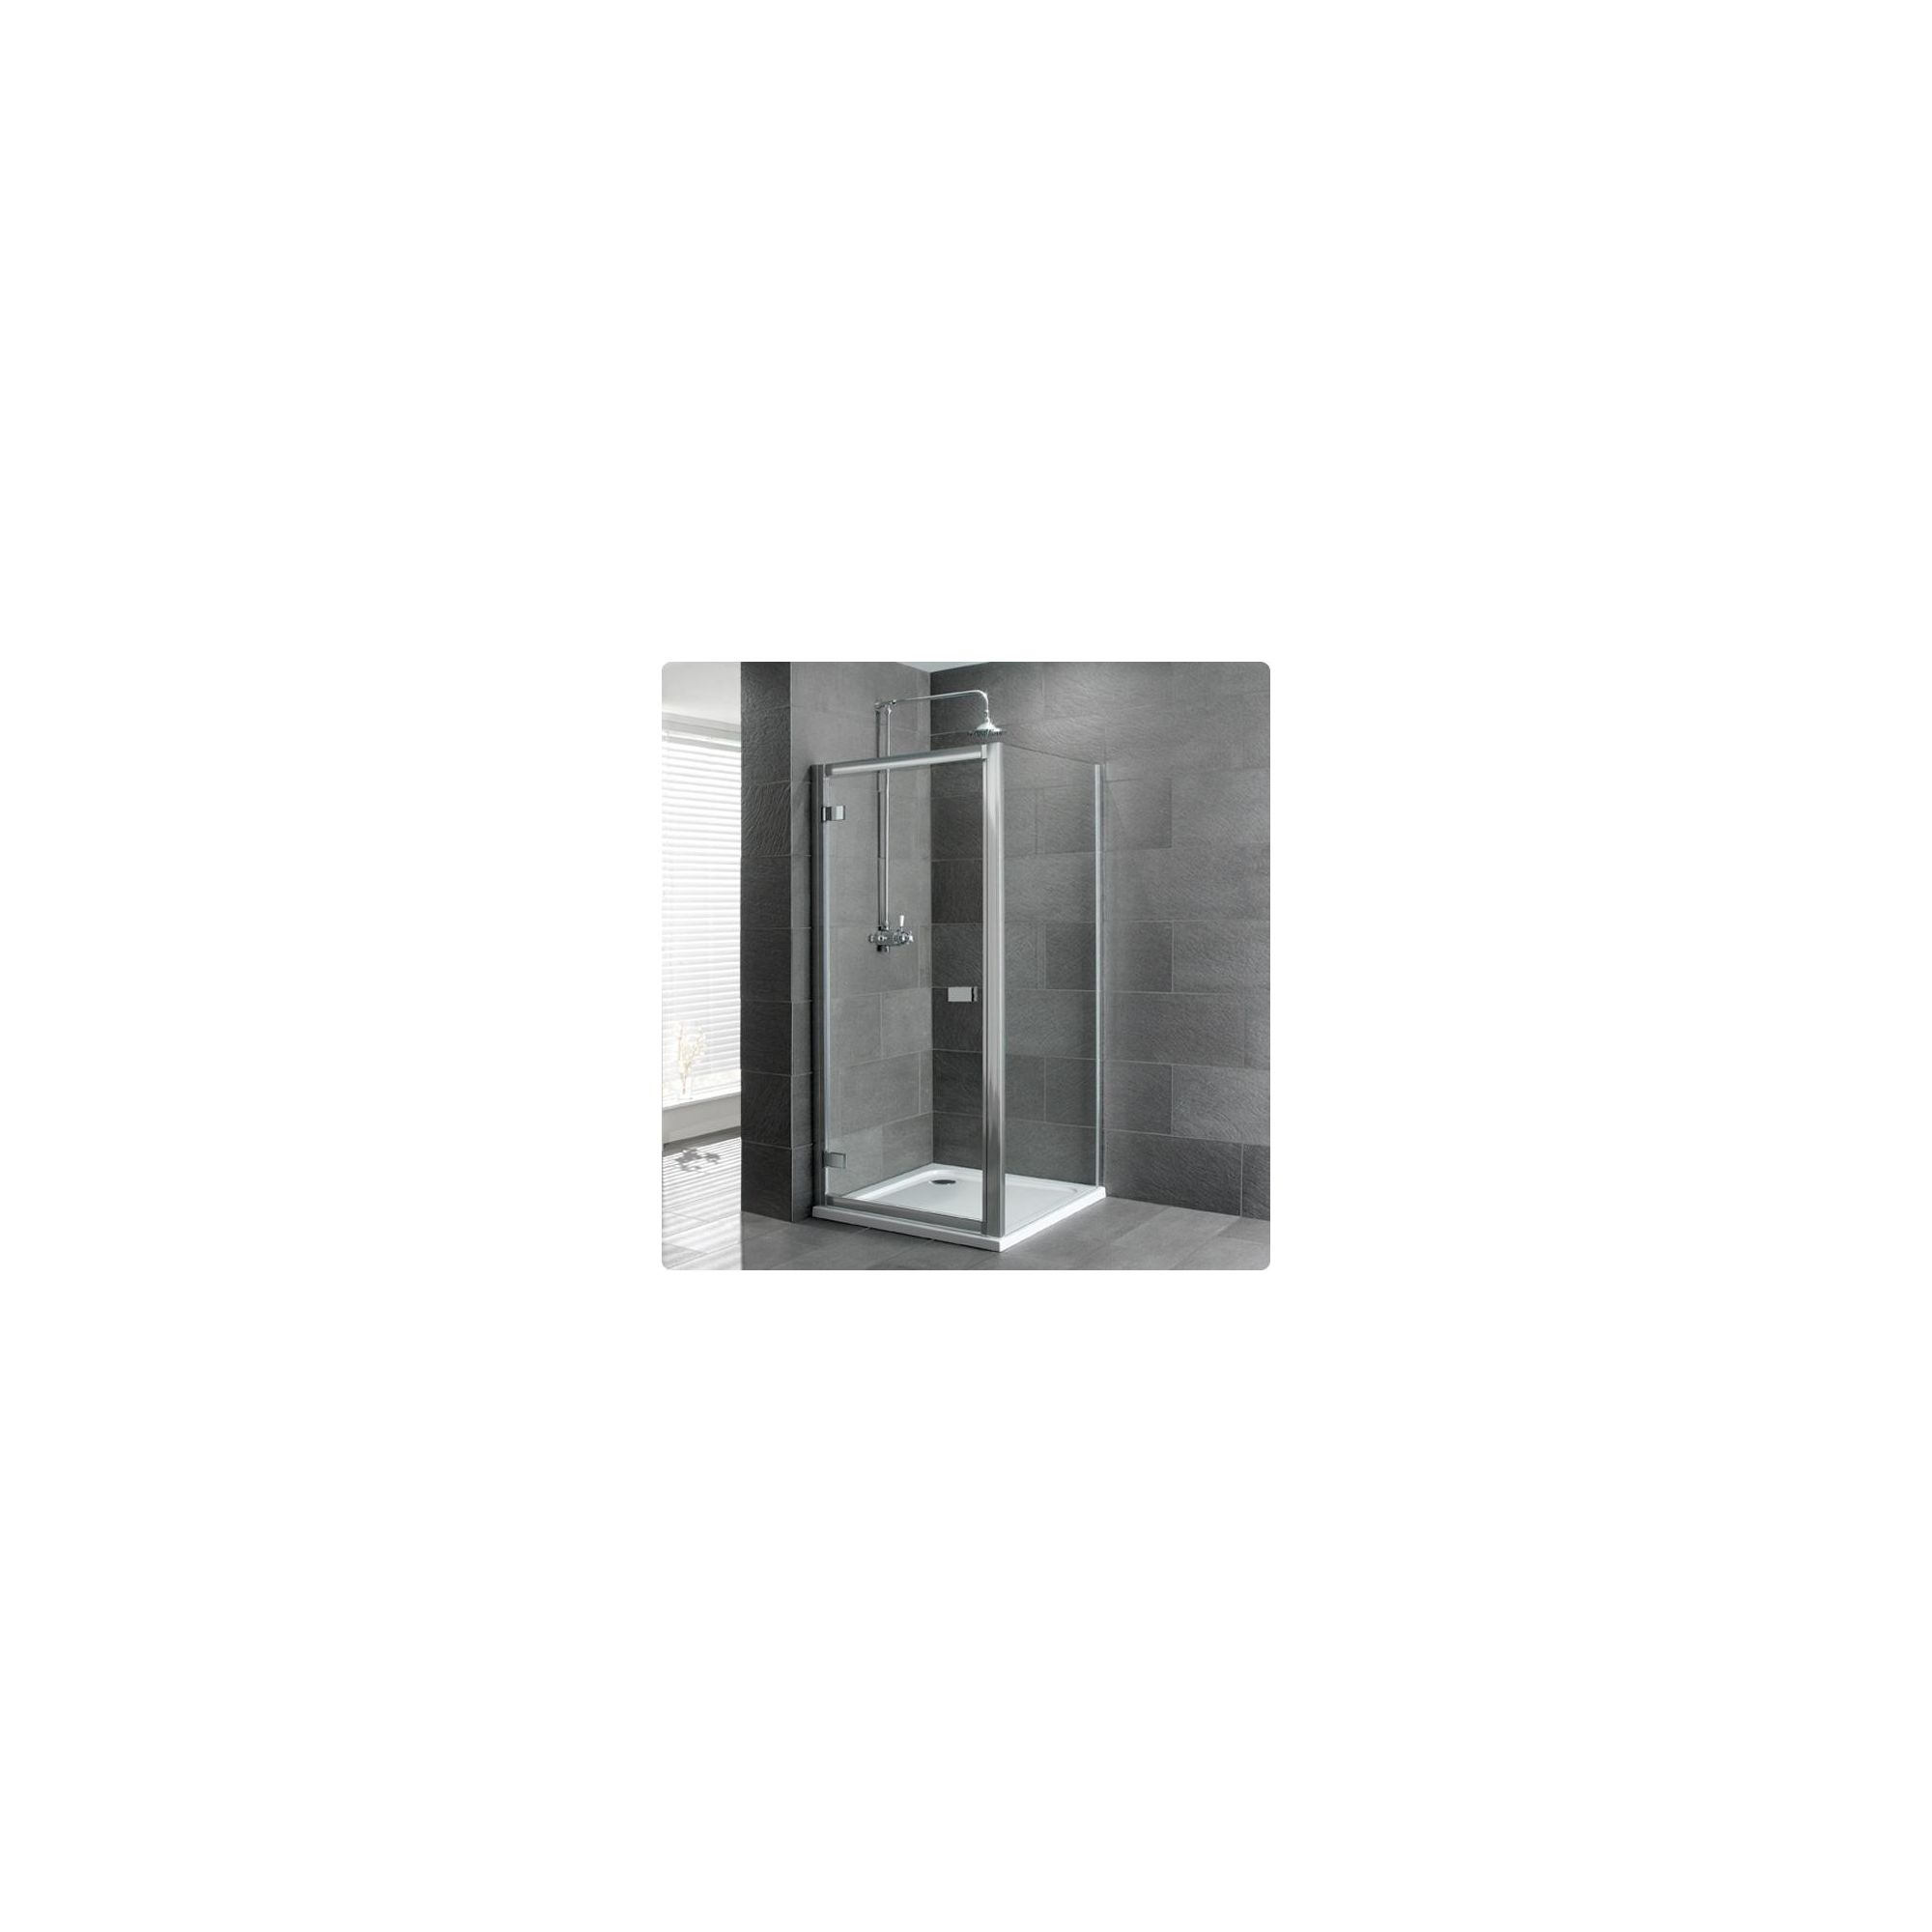 Duchy Select Silver Hinged Door Shower Enclosure, 700mm x 700mm, Standard Tray, 6mm Glass at Tesco Direct